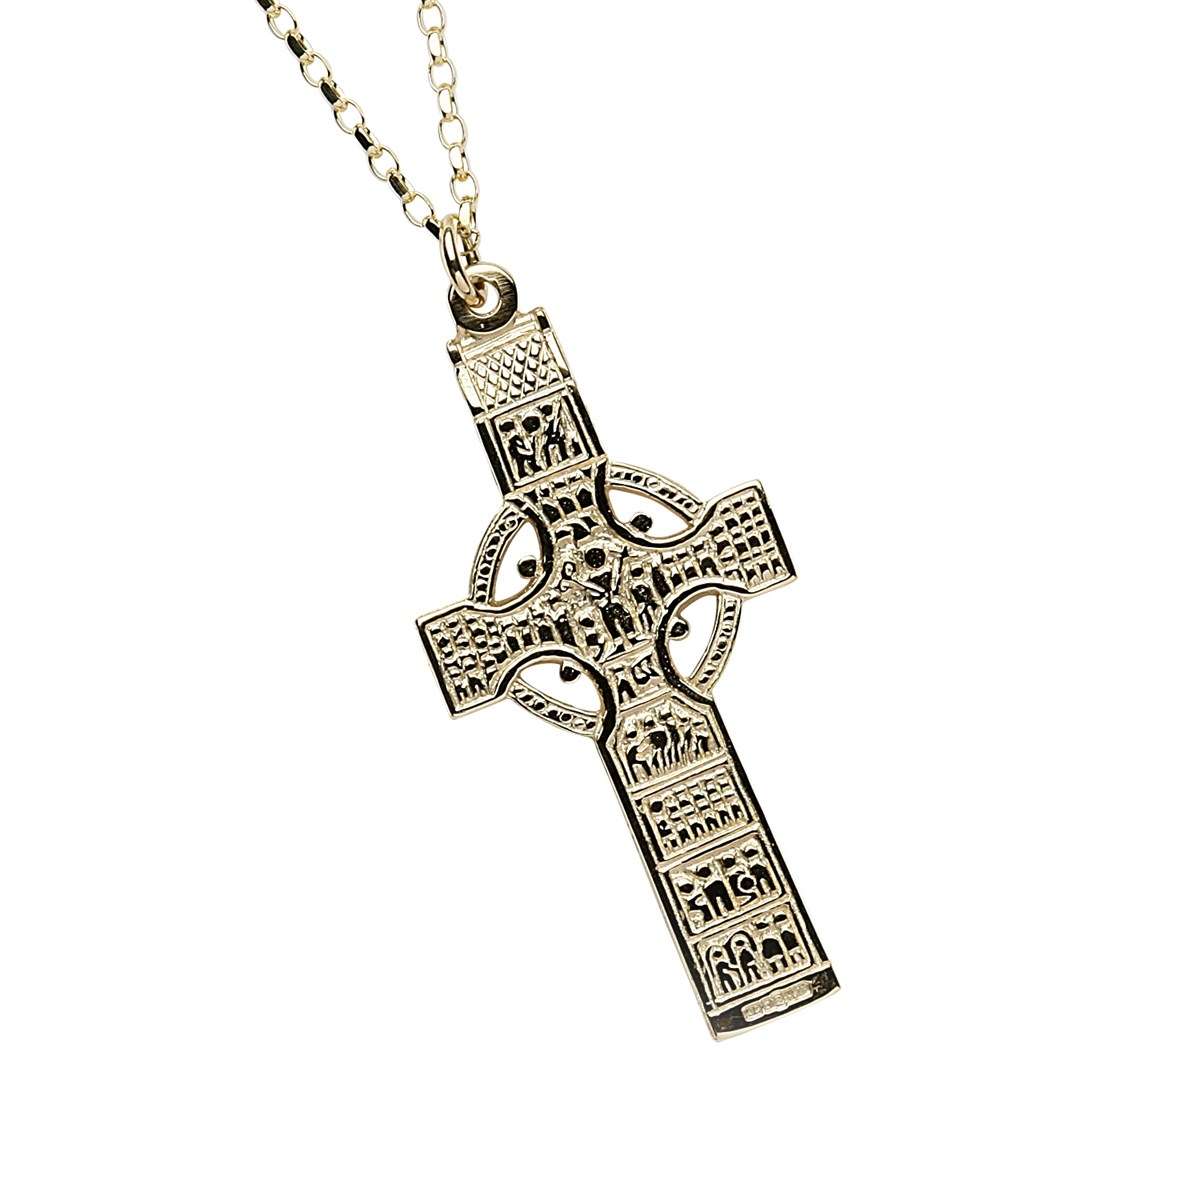 Monasterboice Muiredeach High Cross Large Yellow Gold Necklace - Front